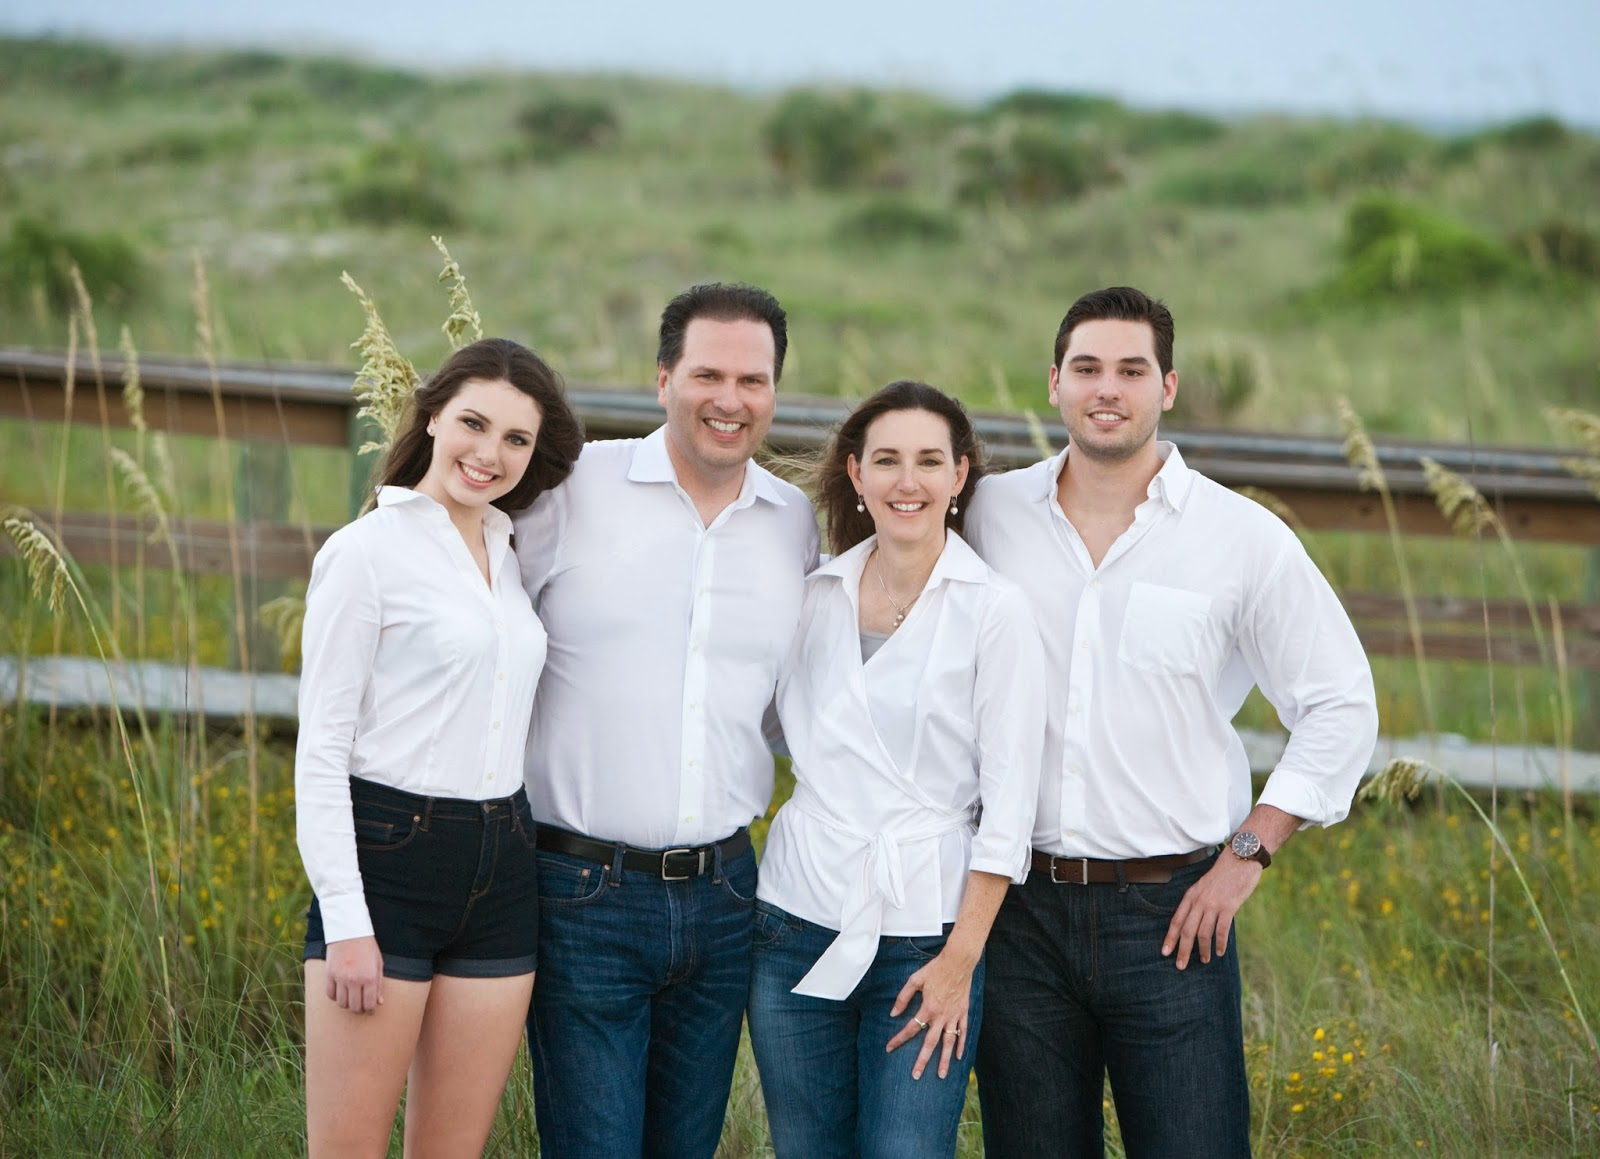 Deanne Dunlop Photography: Family Beach Portraits make great ...